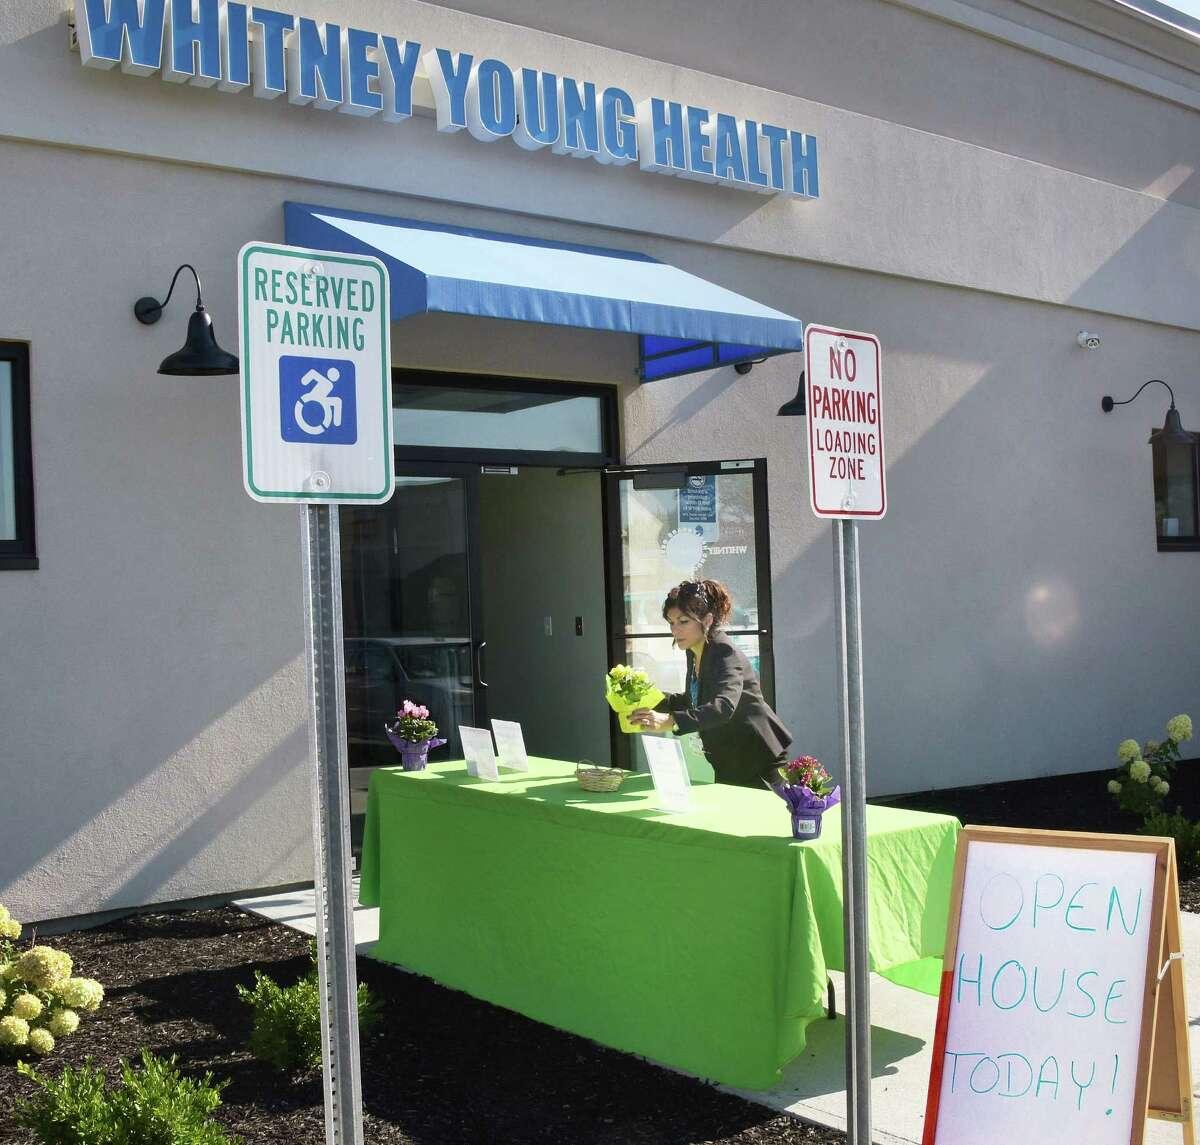 Whitney Young Health readies to unveil their newest facility, the Watervliet Health Center Tuesday Aug. 9, 2016 in Watervliet, NY. (John Carl D'Annibale / Times Union)